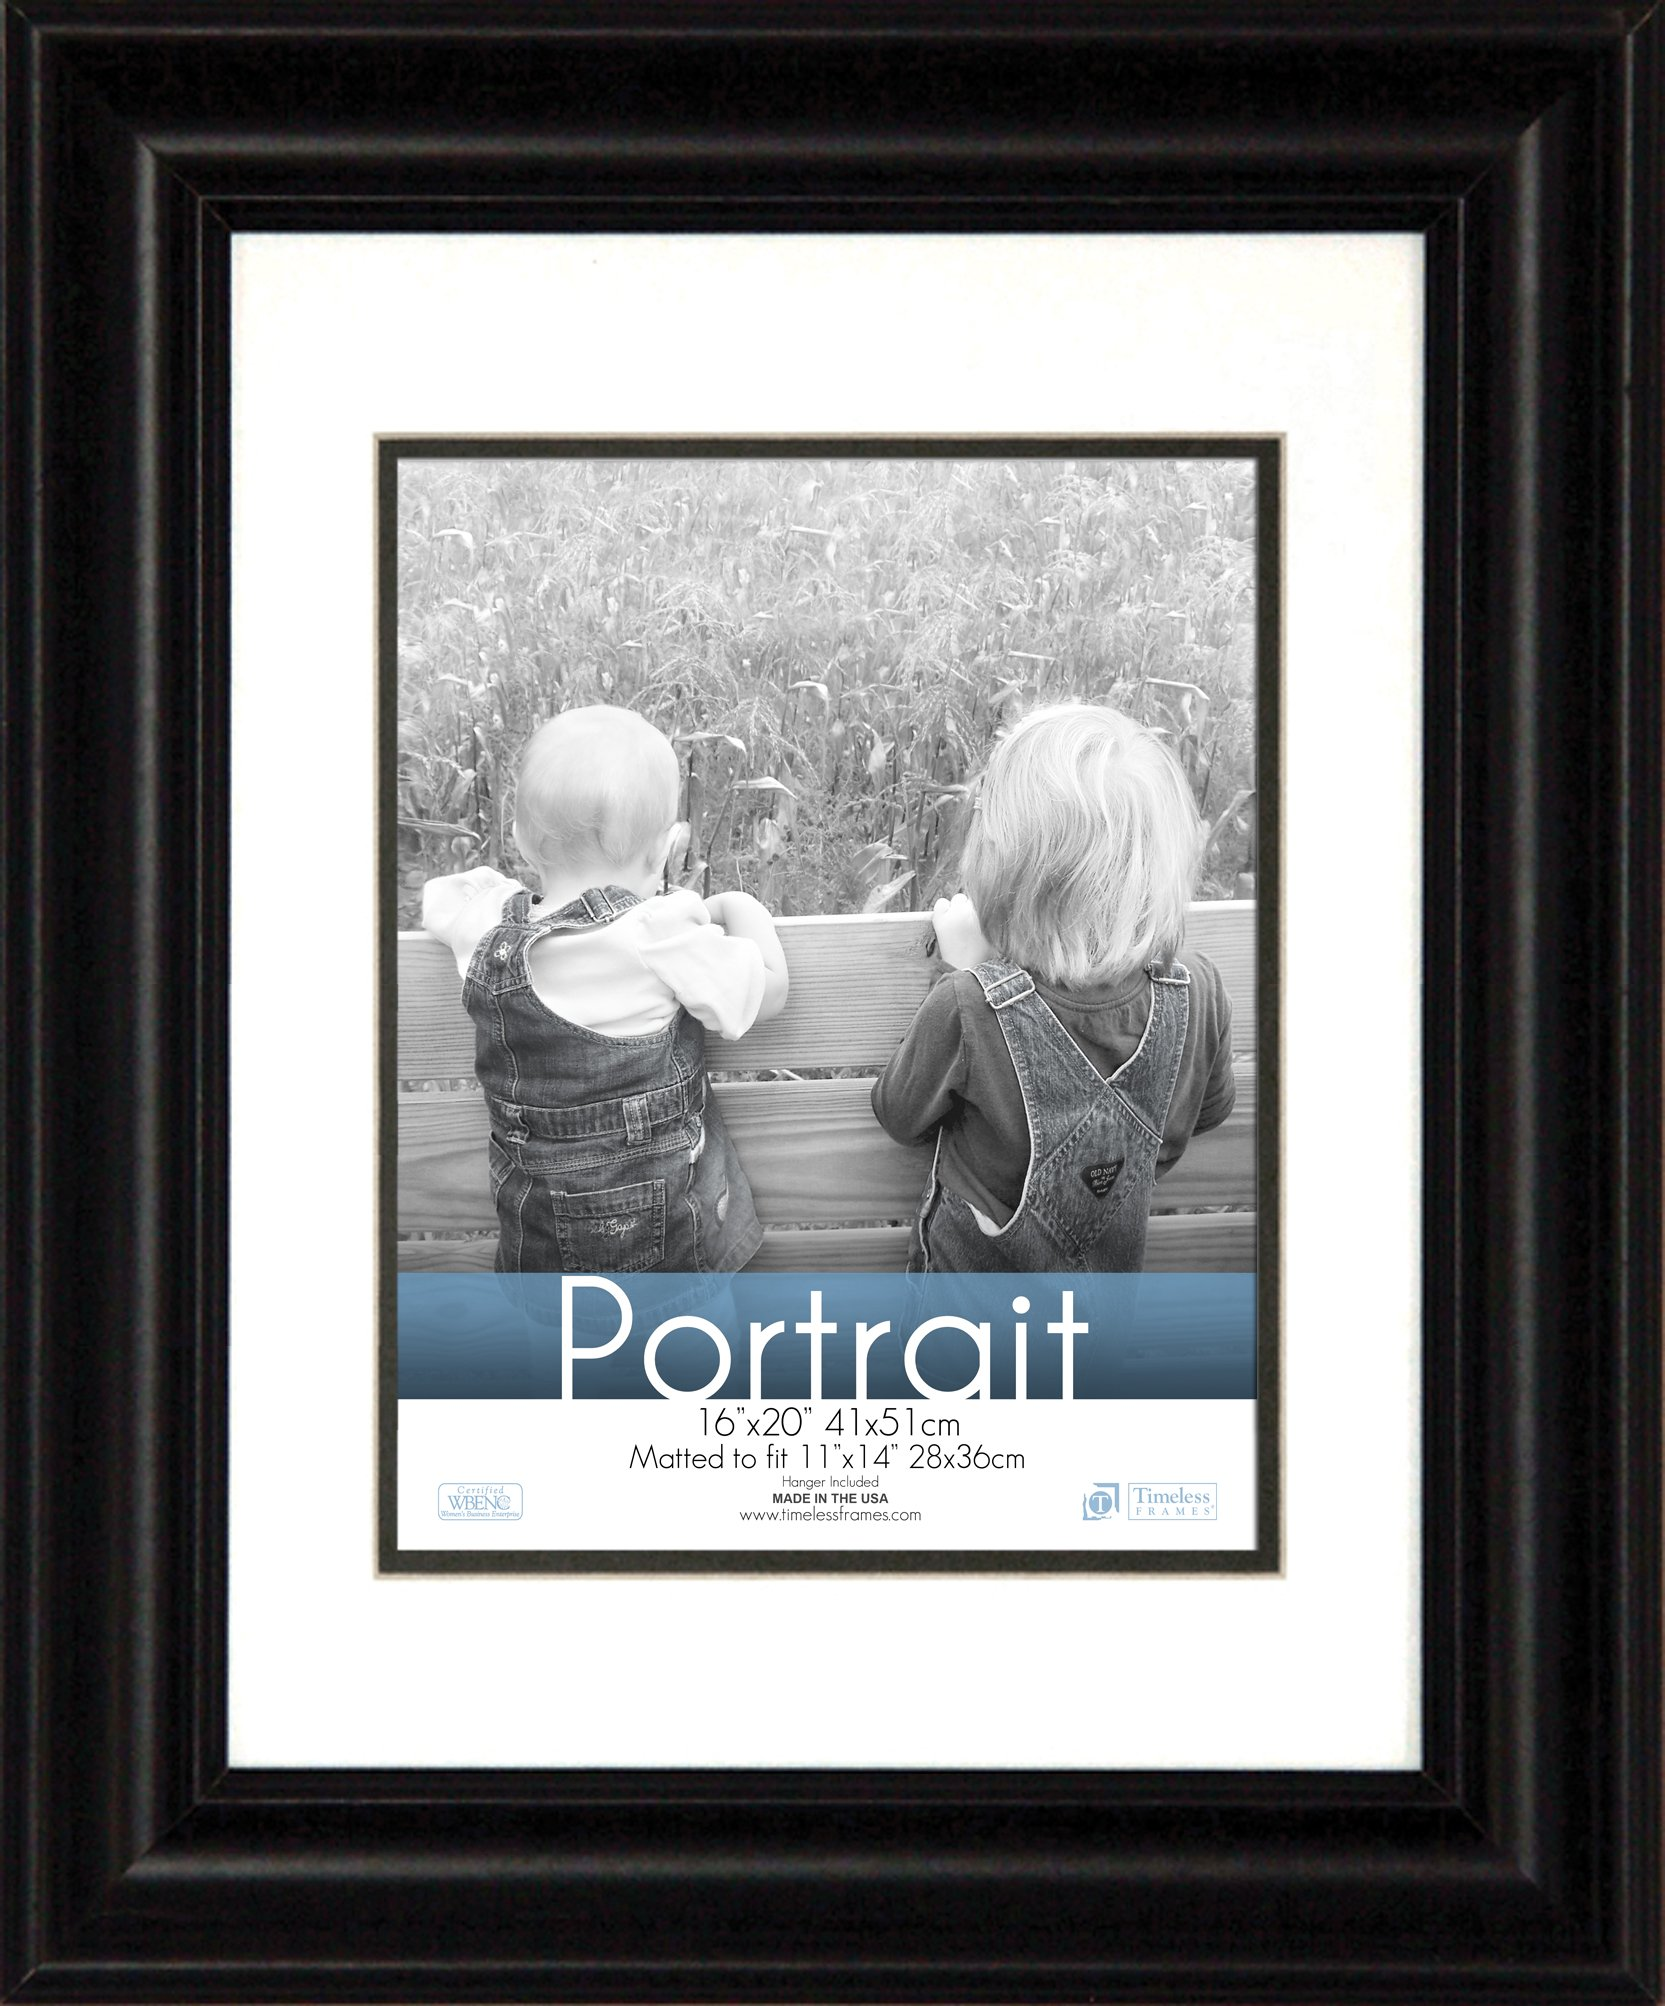 Timeless Expressions Photo Lauren Portrait Wall Frame, 16x20, Black by Timeless Expressions